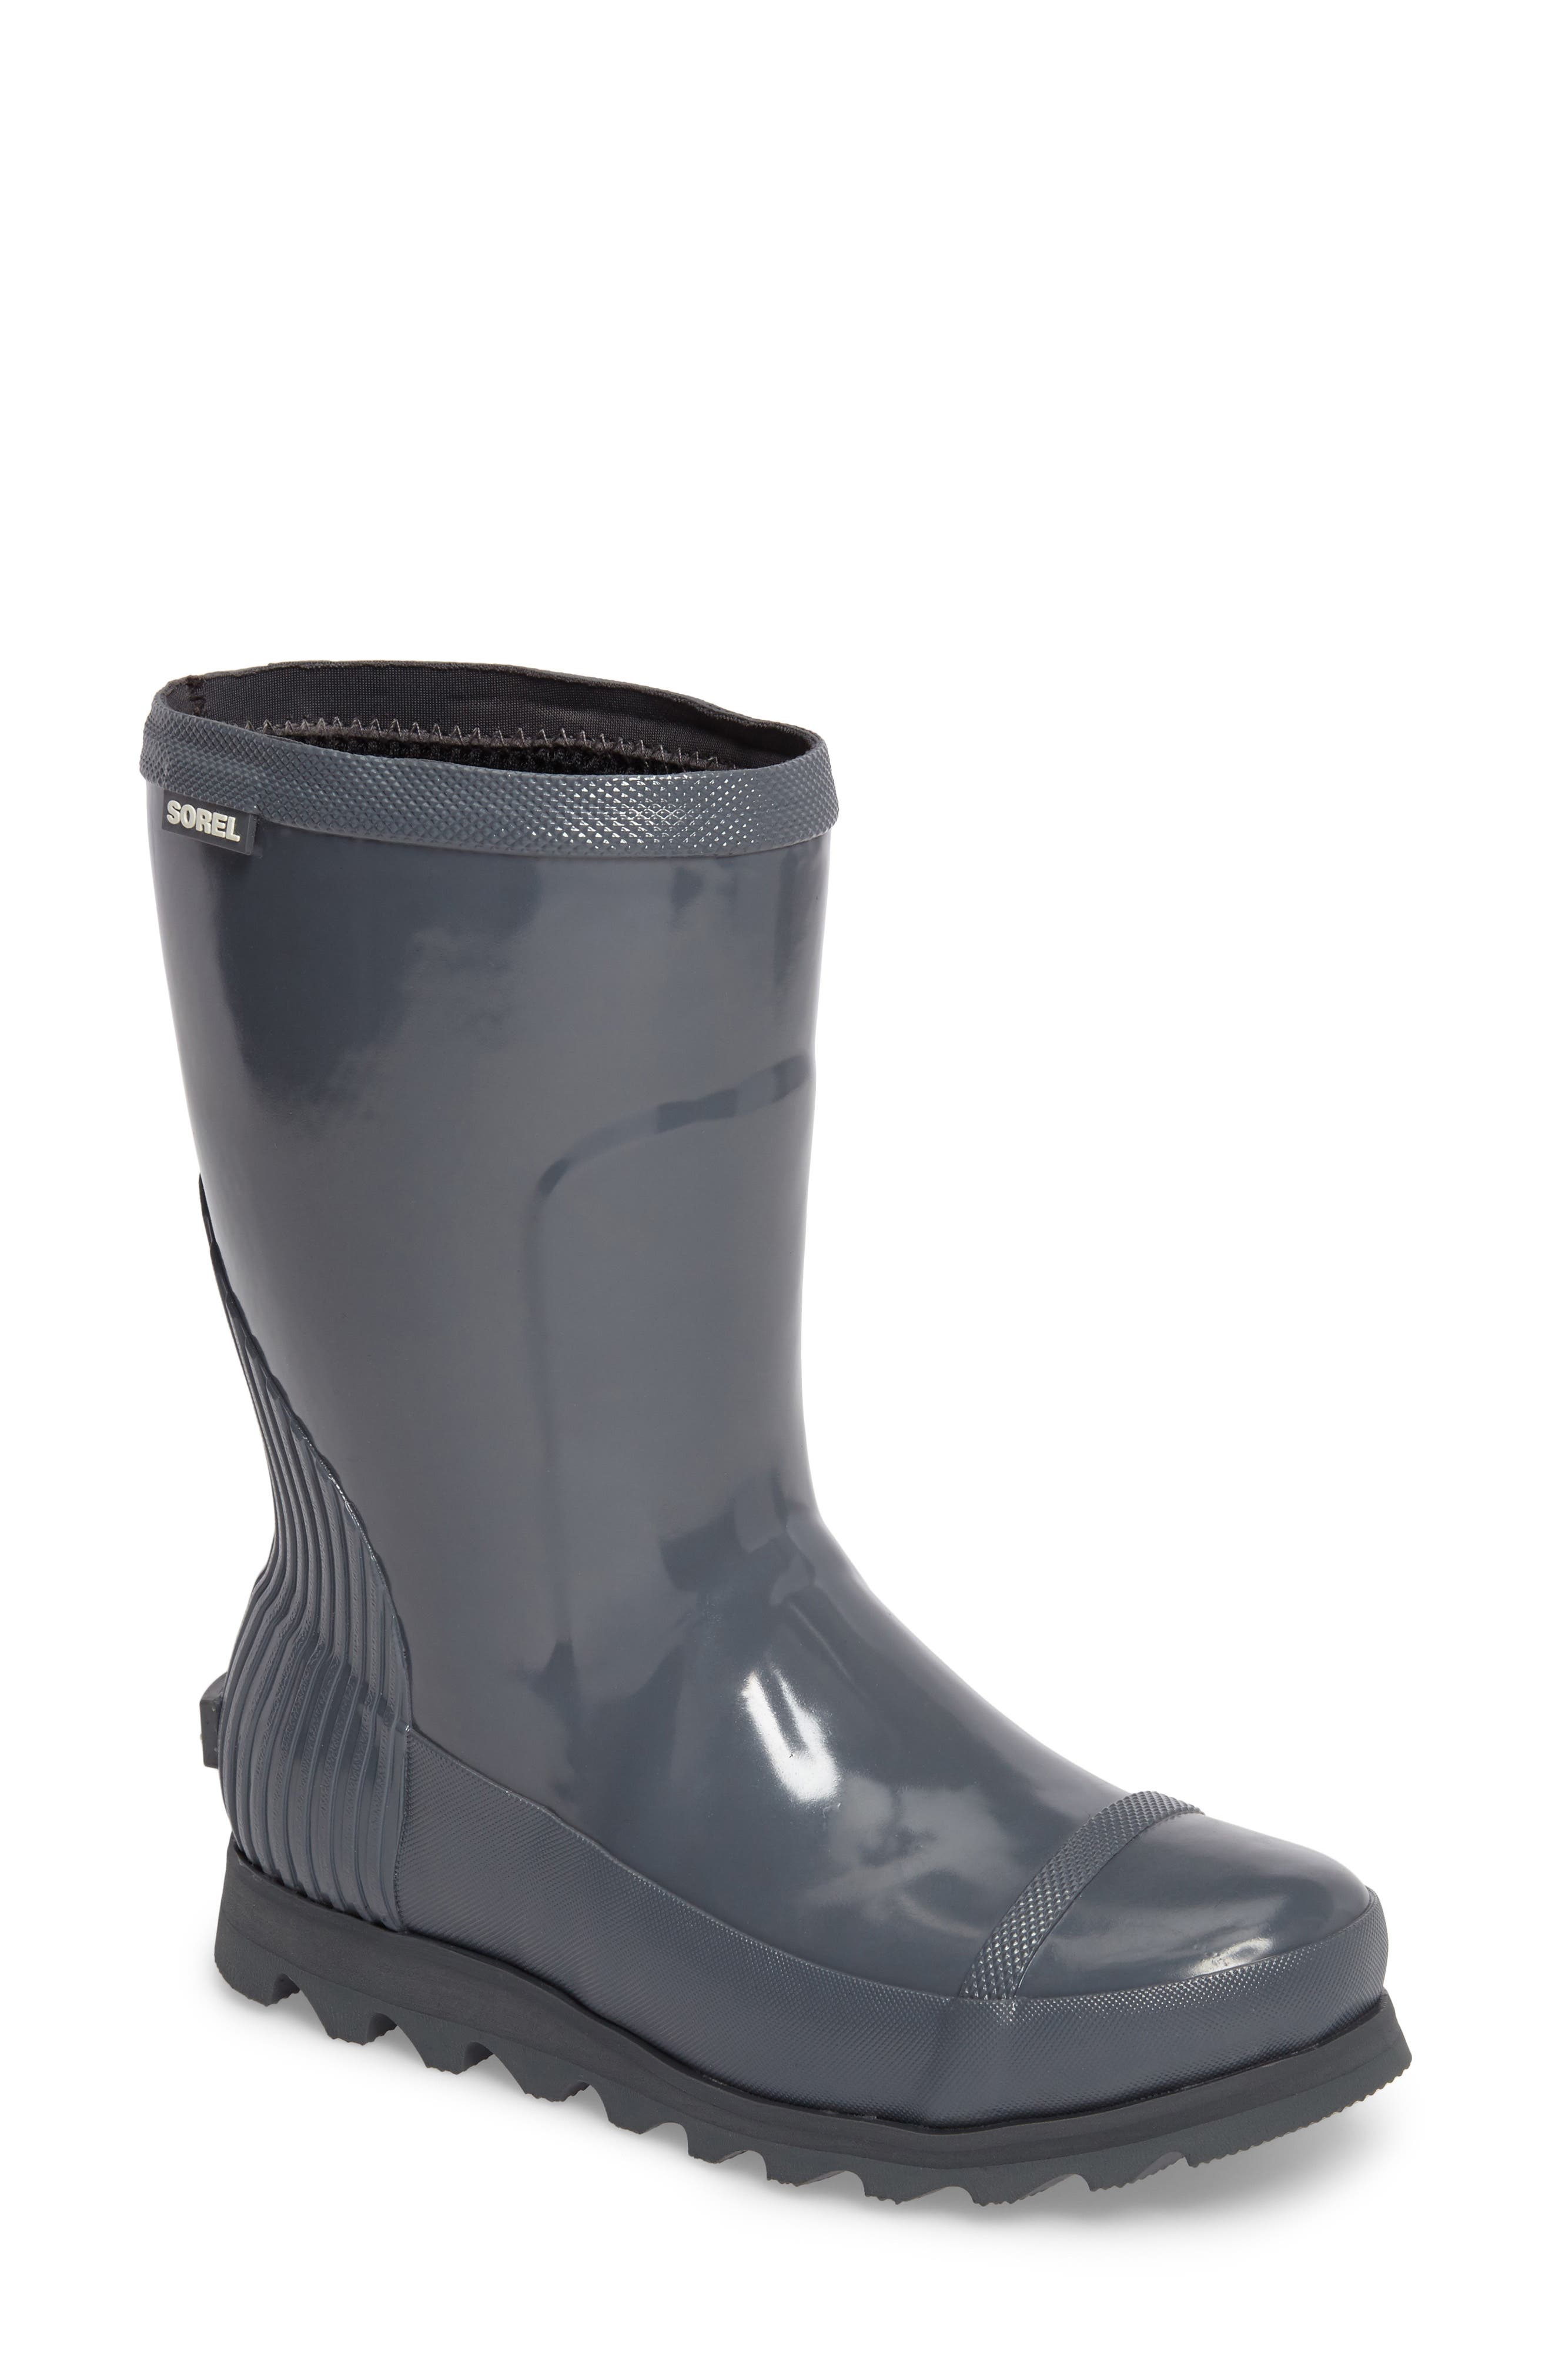 Alternate Image 1 Selected - SOREL Joan Glossy Short Rain Boot (Women)